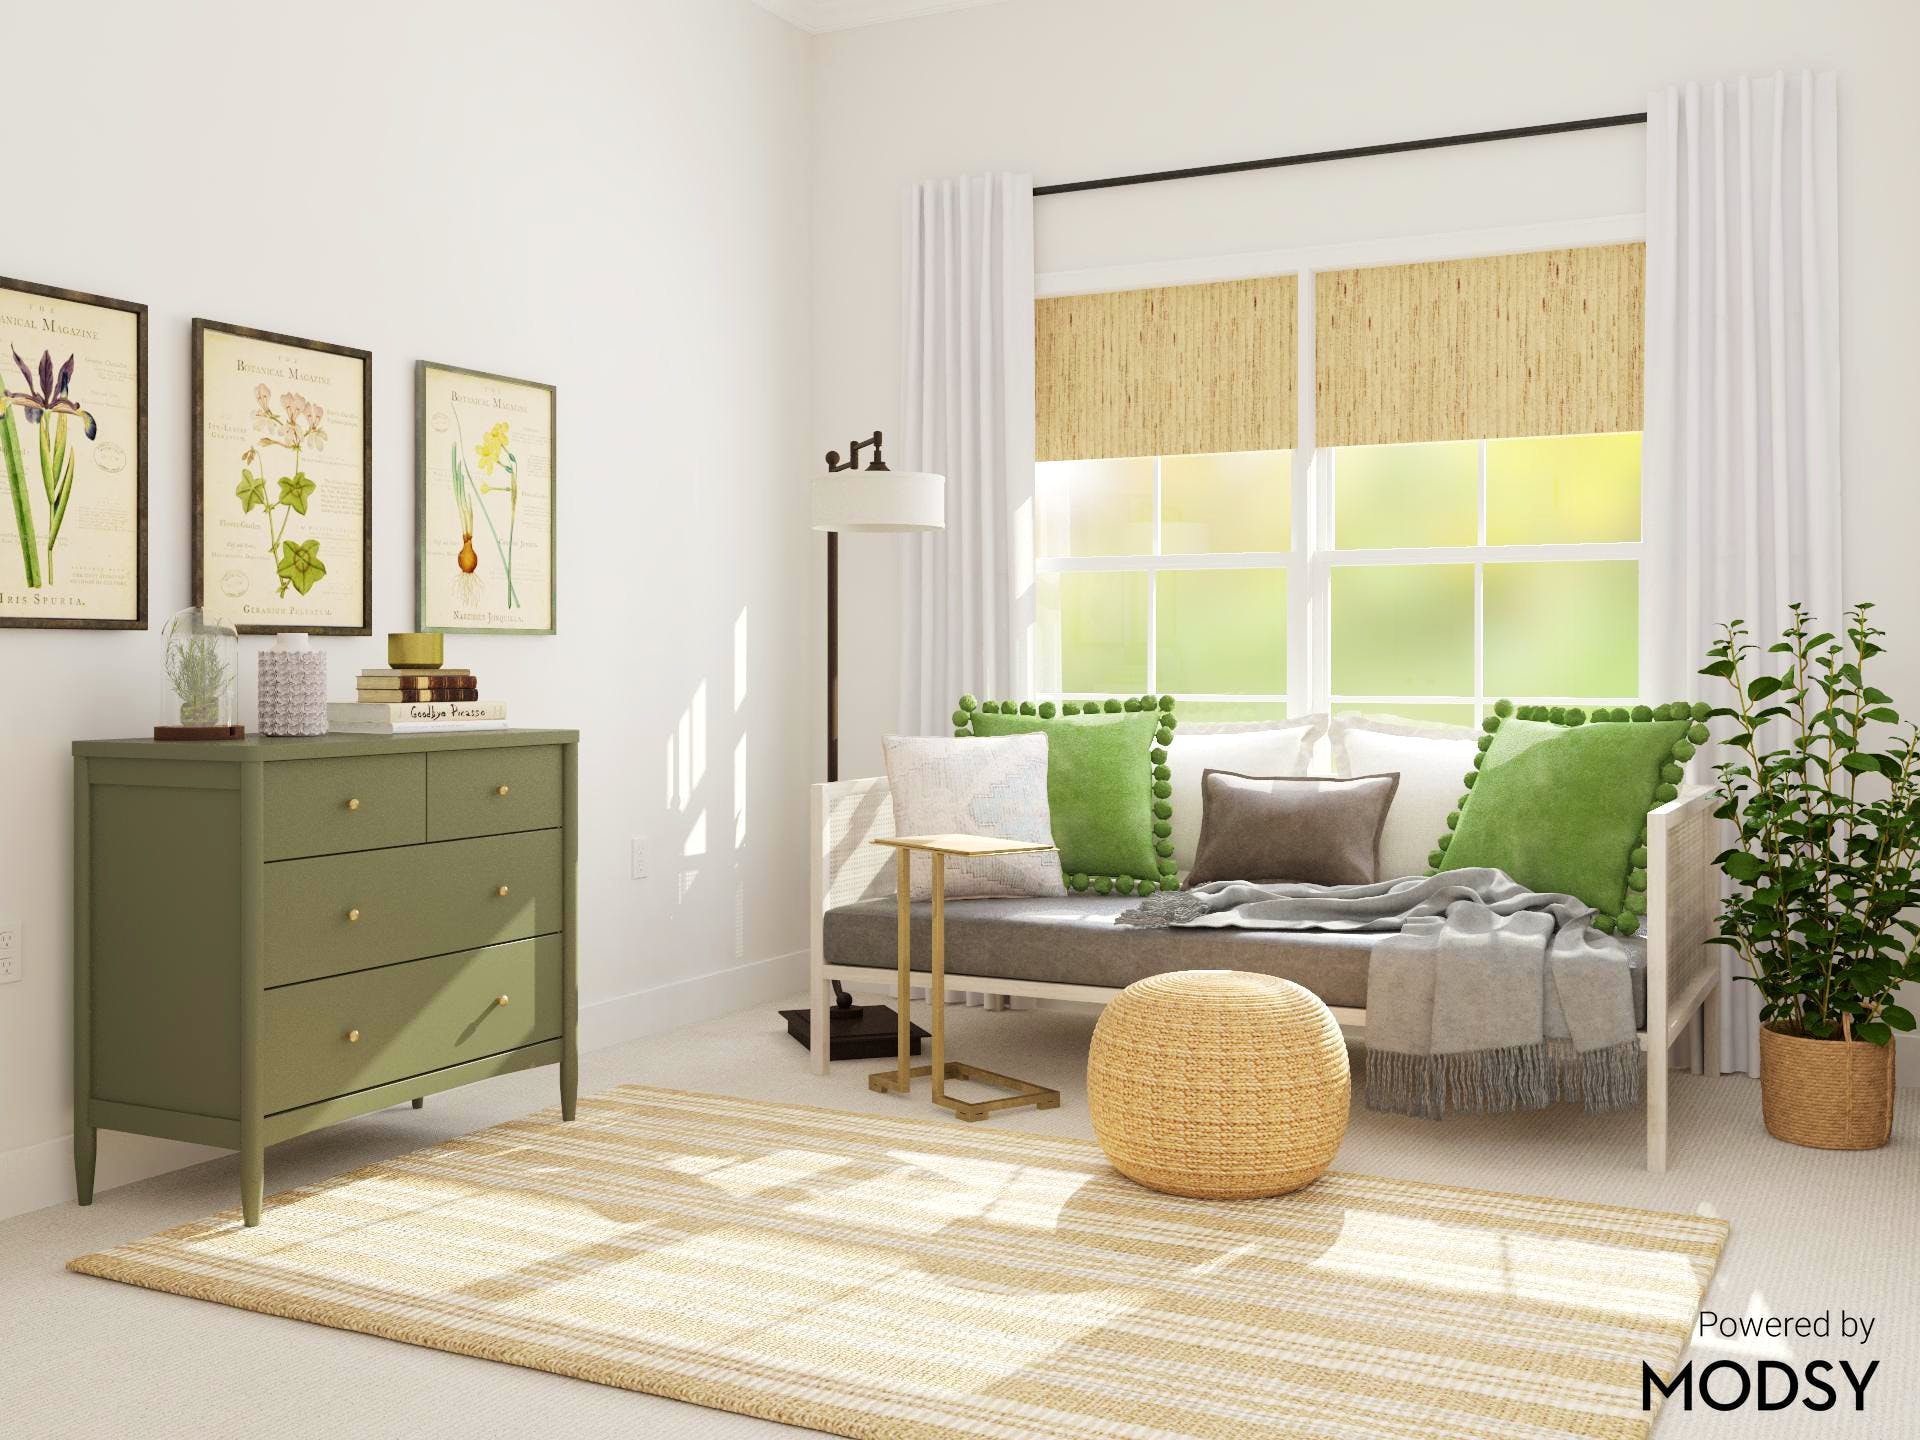 Rustic and Transitional Bedroom in Greens and Neutrals